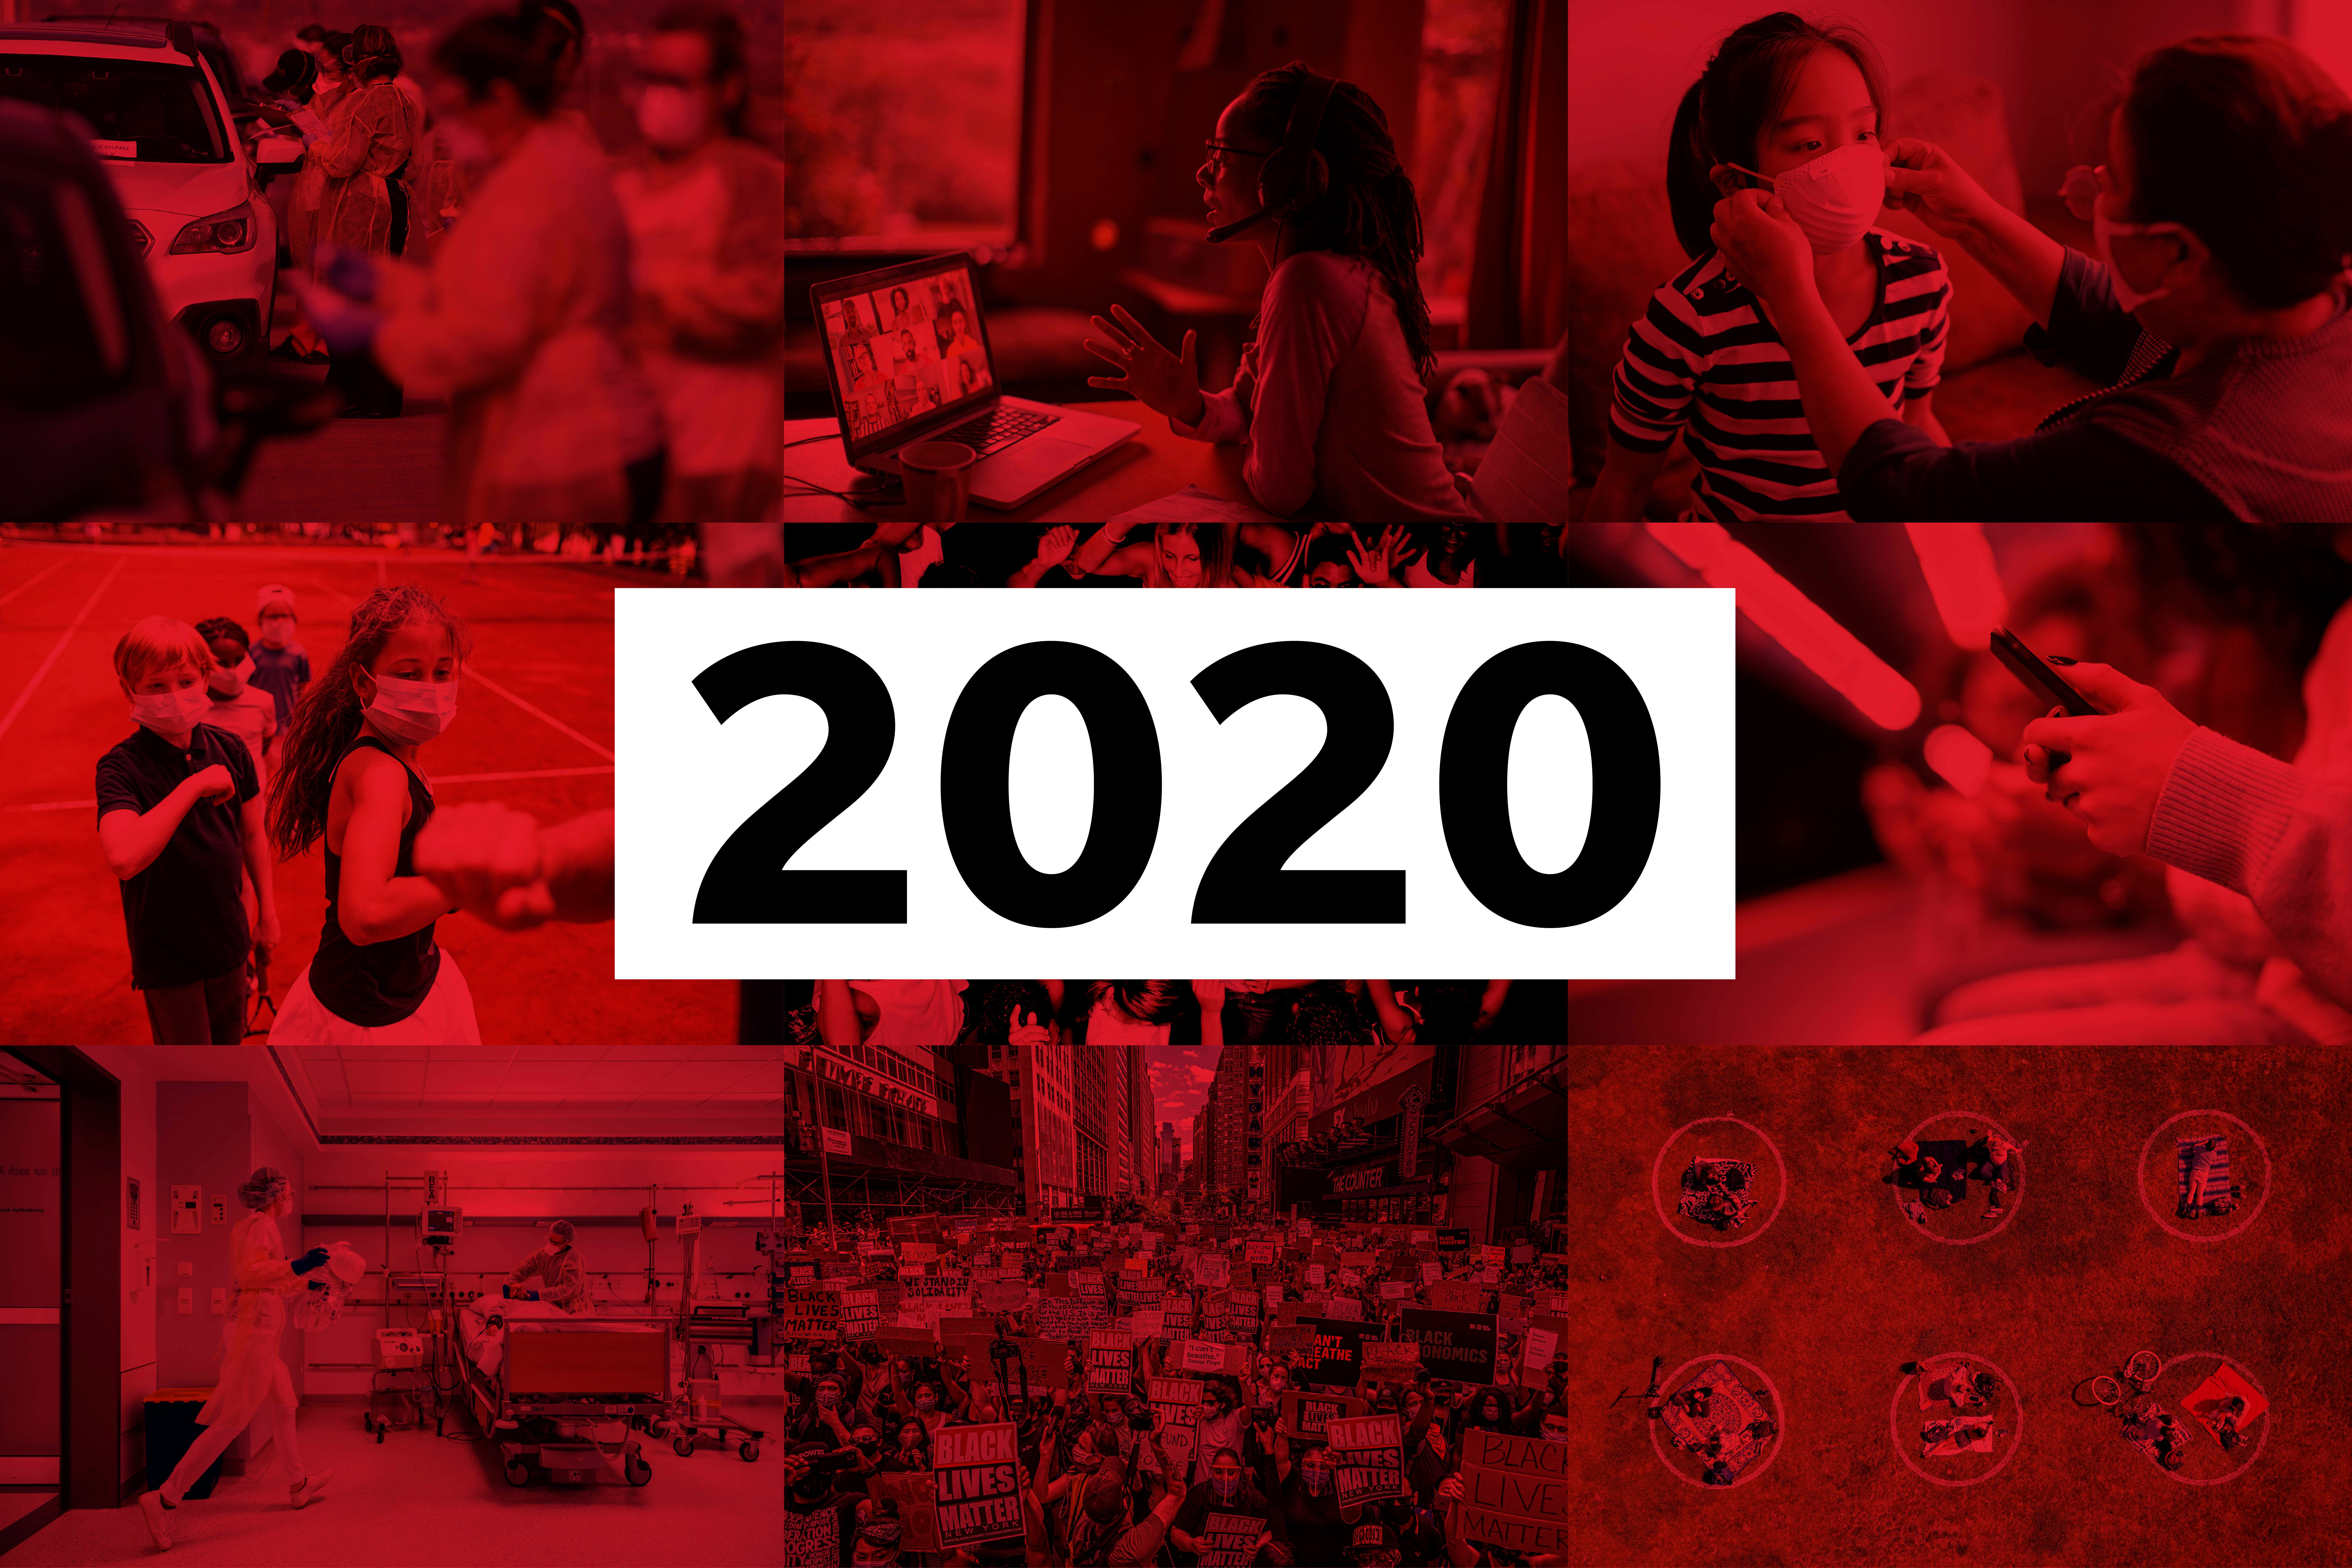 Word created or popularized in 2020